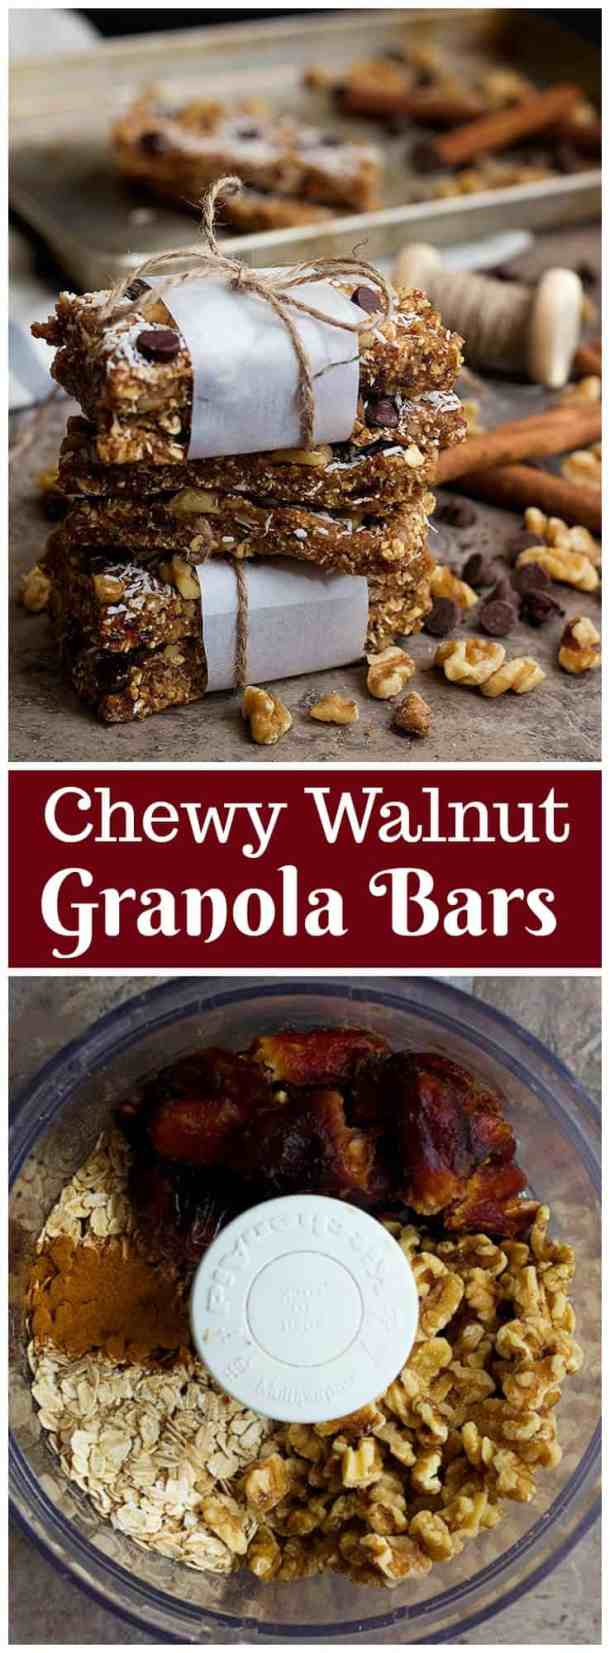 This Chewy Granola Bars Recipe is so easy and simple to make. It has a handful of ingredients, is naturally sweetened with dates and has a crunchy texture thanks to walnuts.